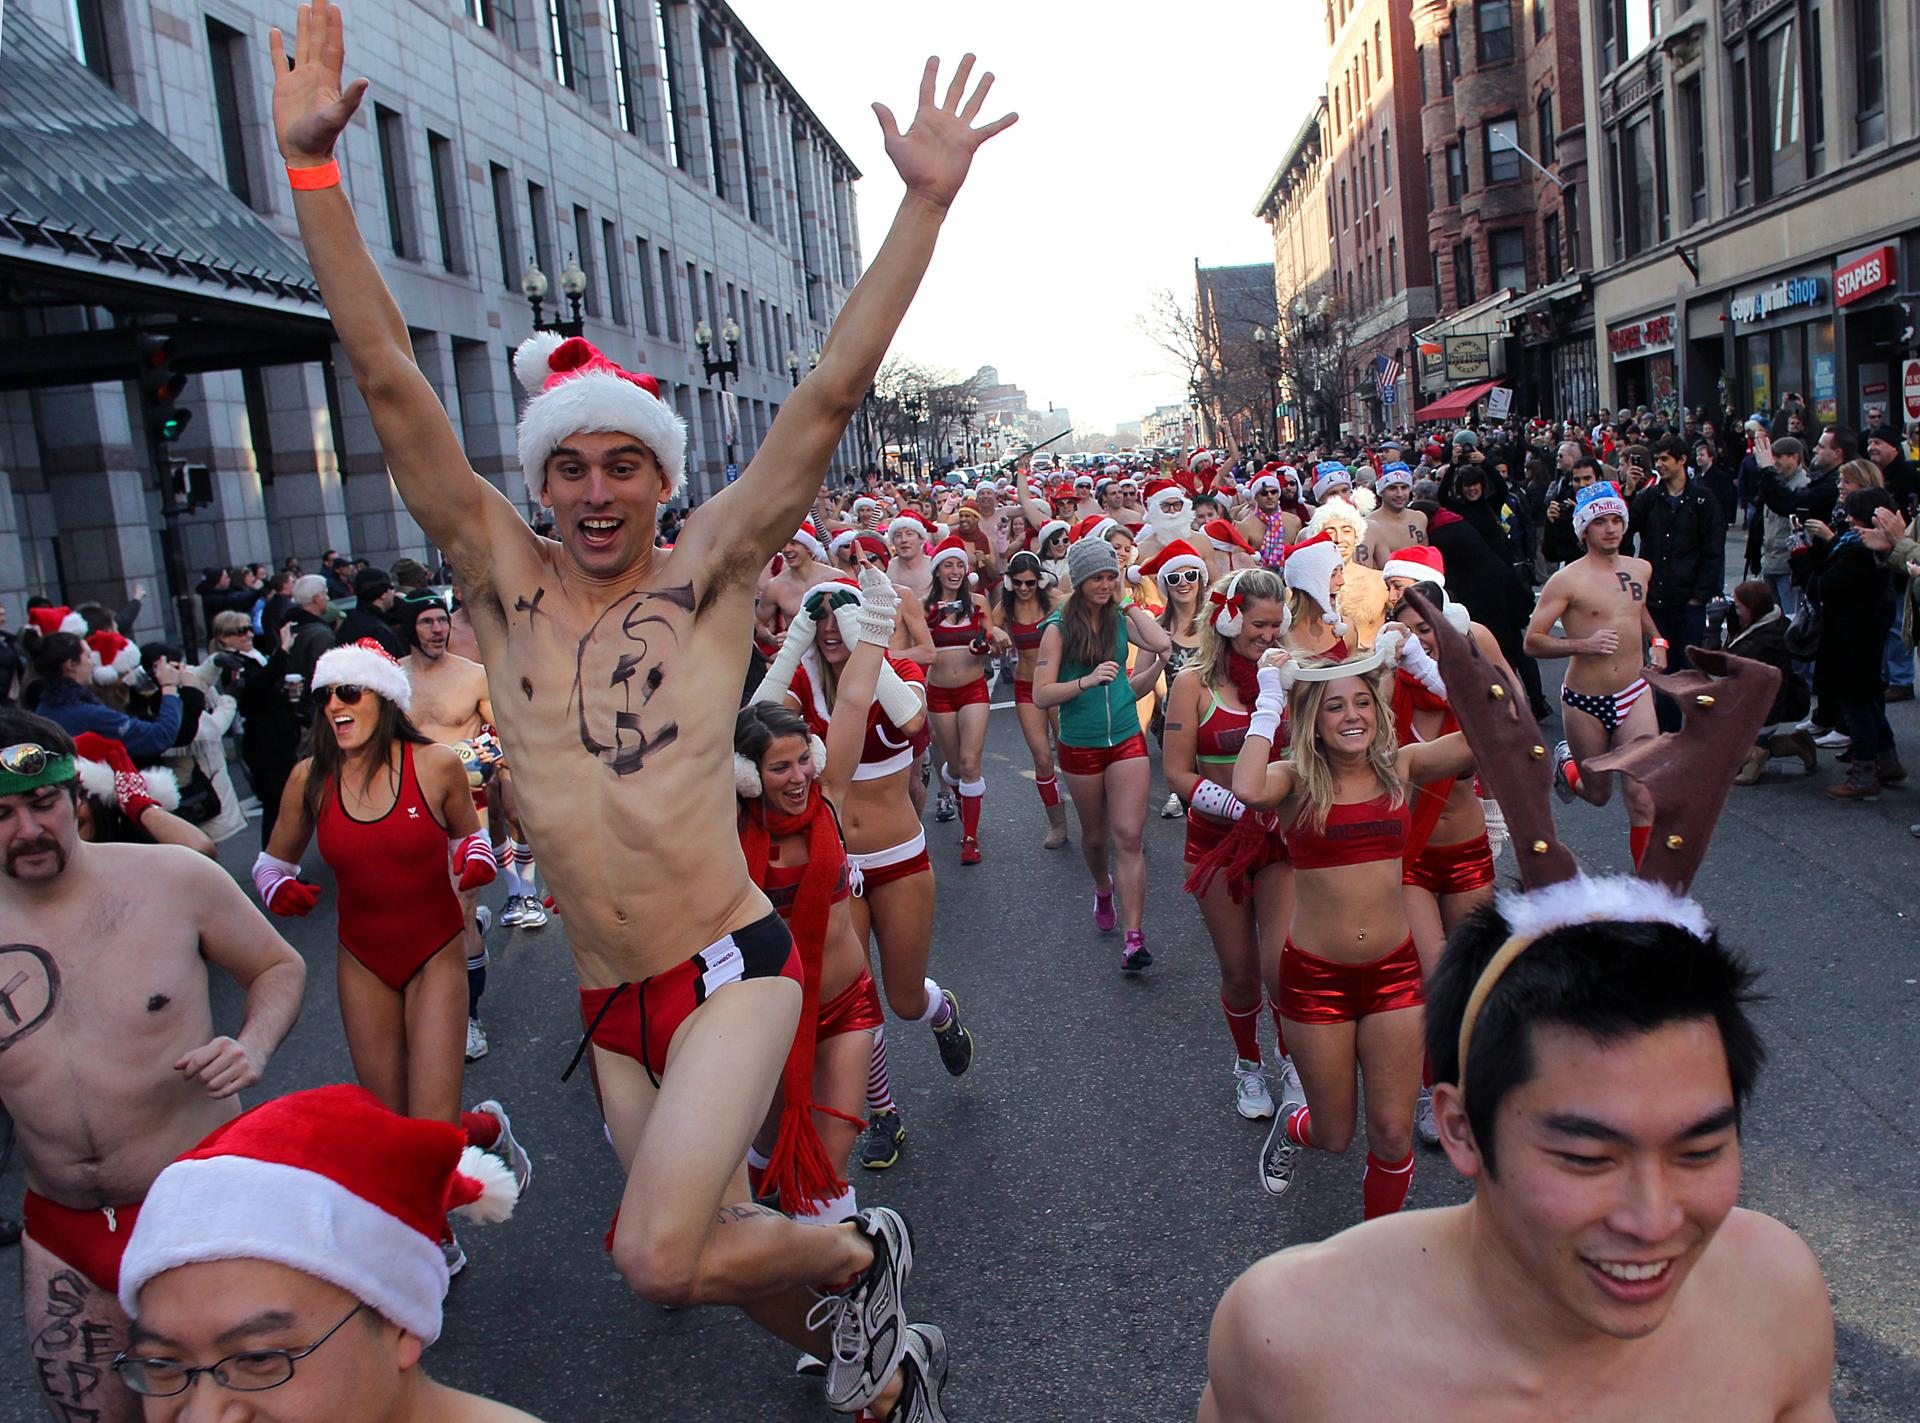 Boston-12/11/2010- During the annual Santa Speedo Run which started at the Lir Irish Pub & Restaurant on Boylston Street, a runner jumps in the air at the start. Boston Globe staff photo by John Tlumacki (metro) Library Tag 12122010 Metro